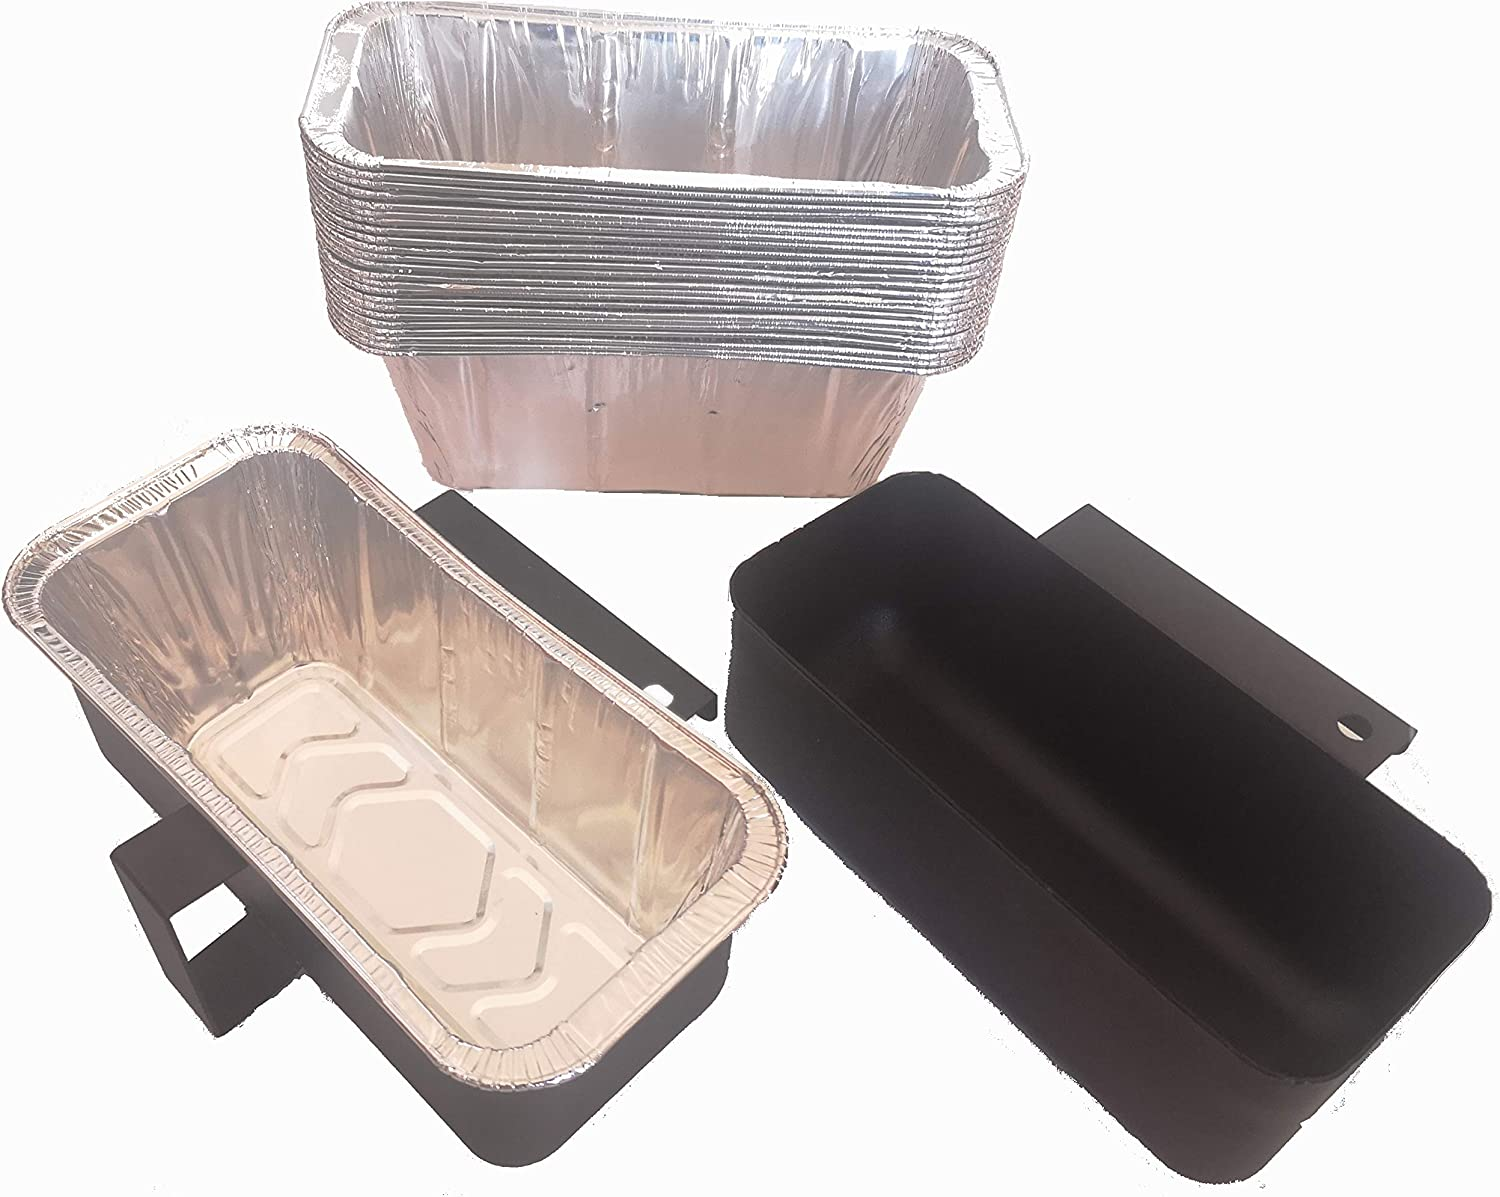 Firsgrill Foil Tray Grease Cup Liners for Blackstone Grills 20